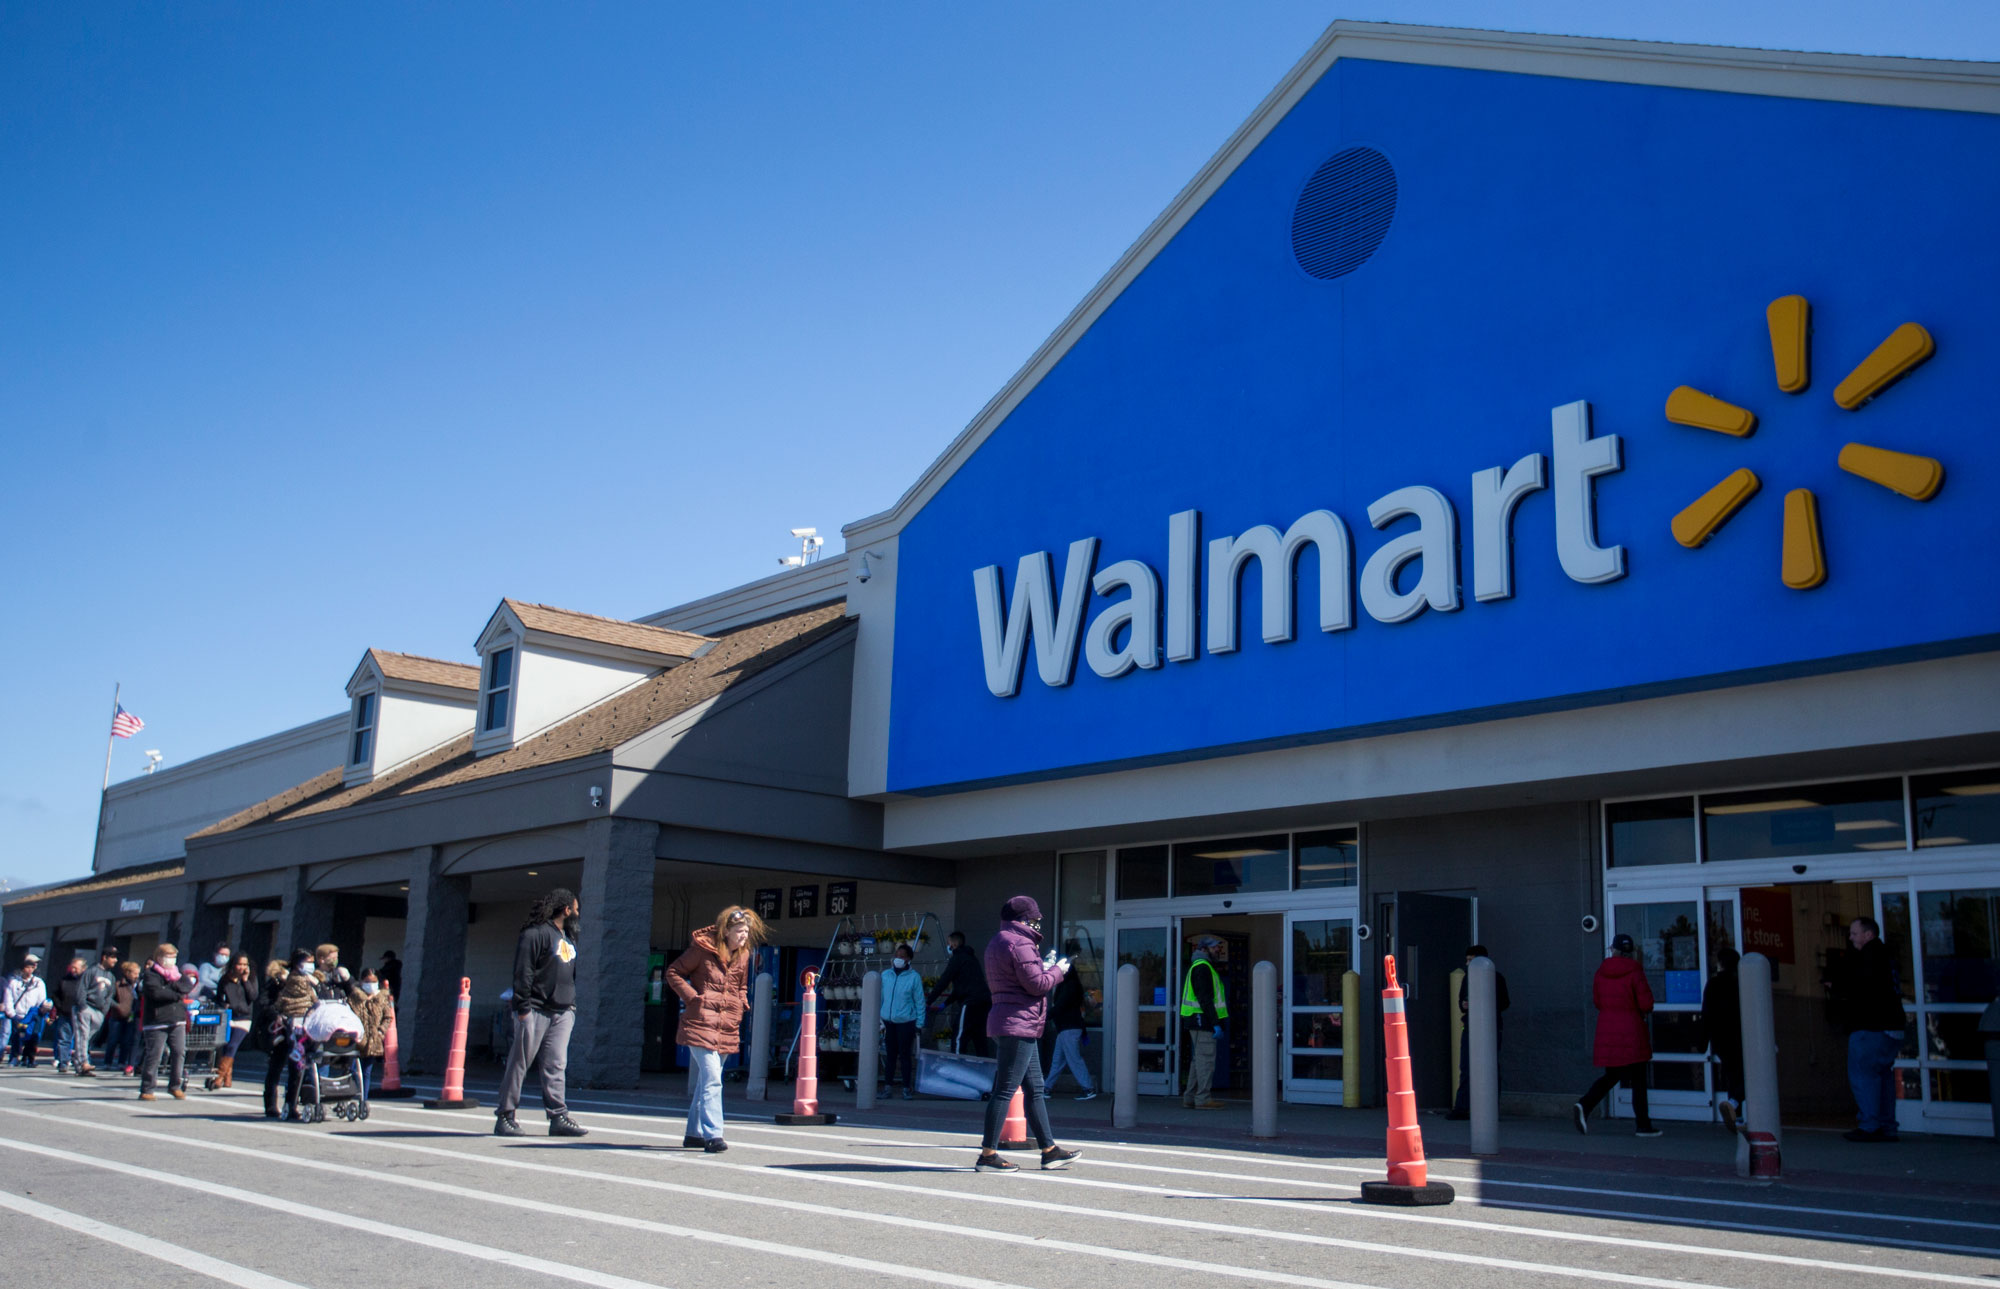 The Walmart in Quincy, Massachusetts, closed Monday after a cluster of coronavirus cases was identified among employees. (Blake Nissen/The Boston Globe/Getty Images)